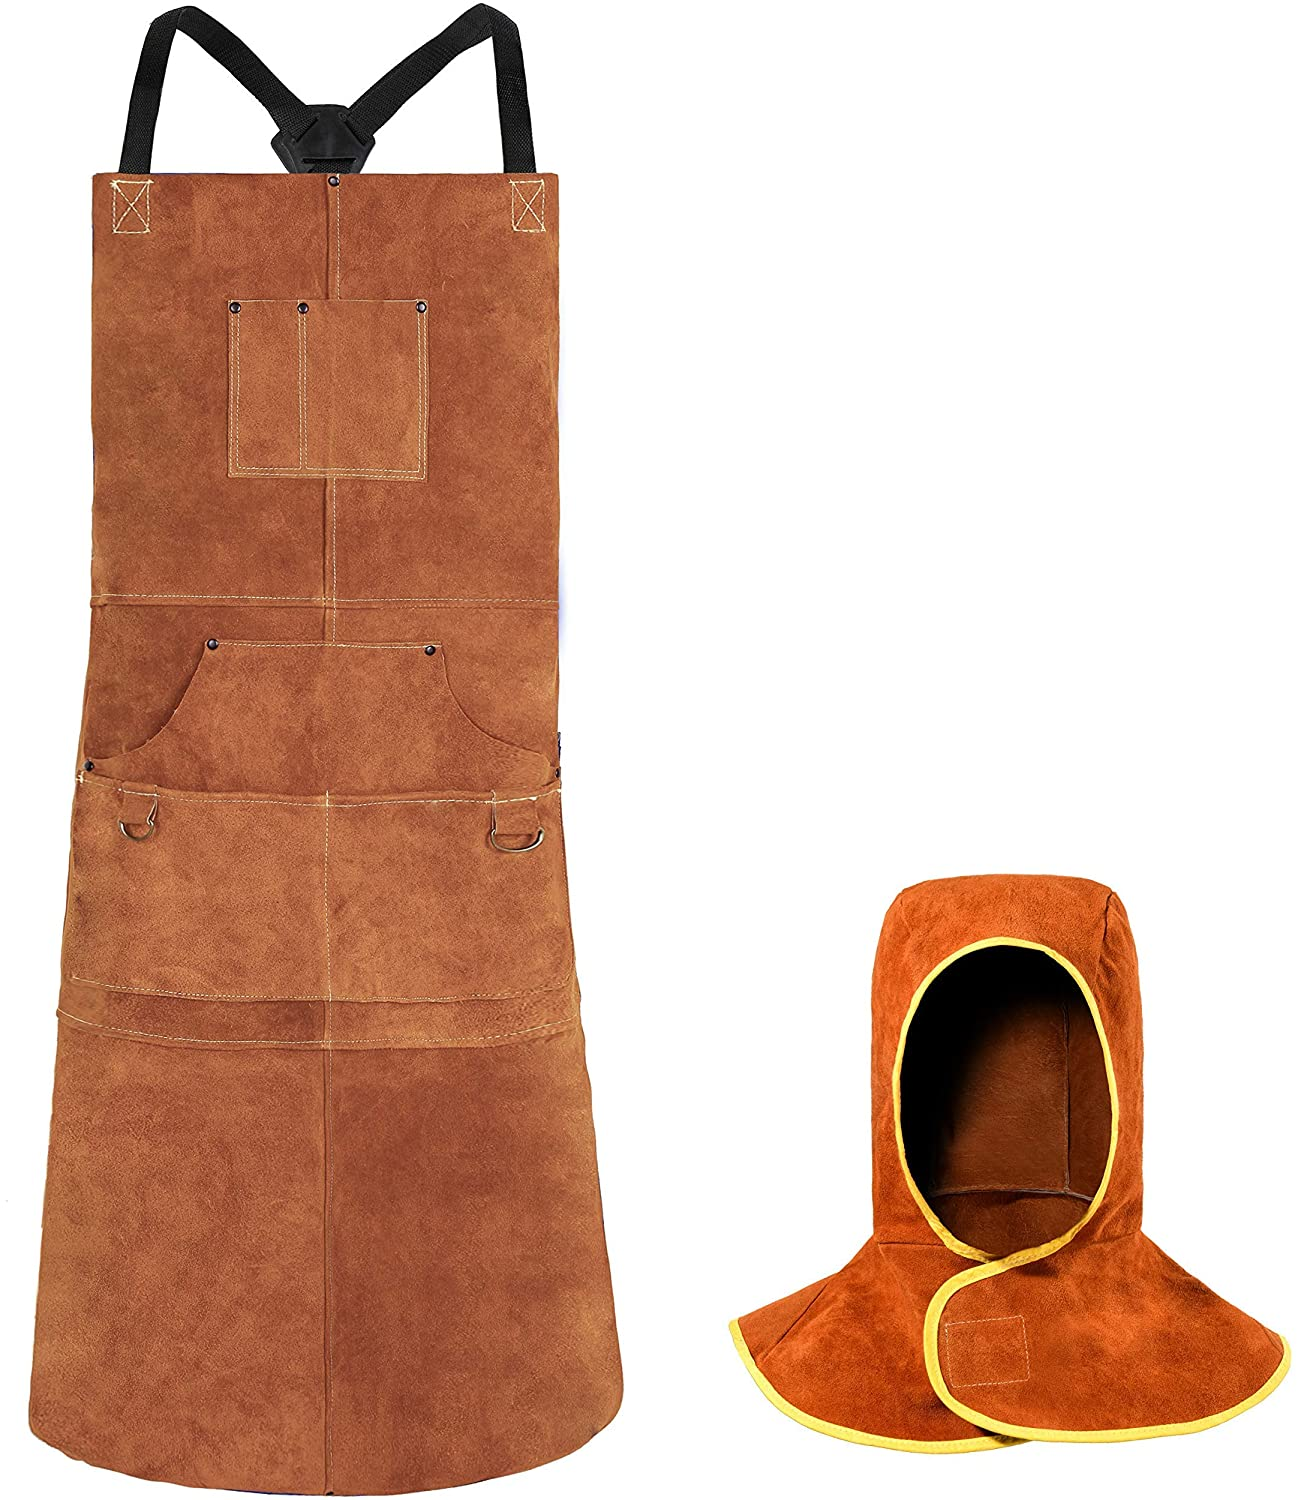 Leather Welding Apron with Welding Hood - Heat & Flame Protection - Adustable M to XXXL for Men & Women